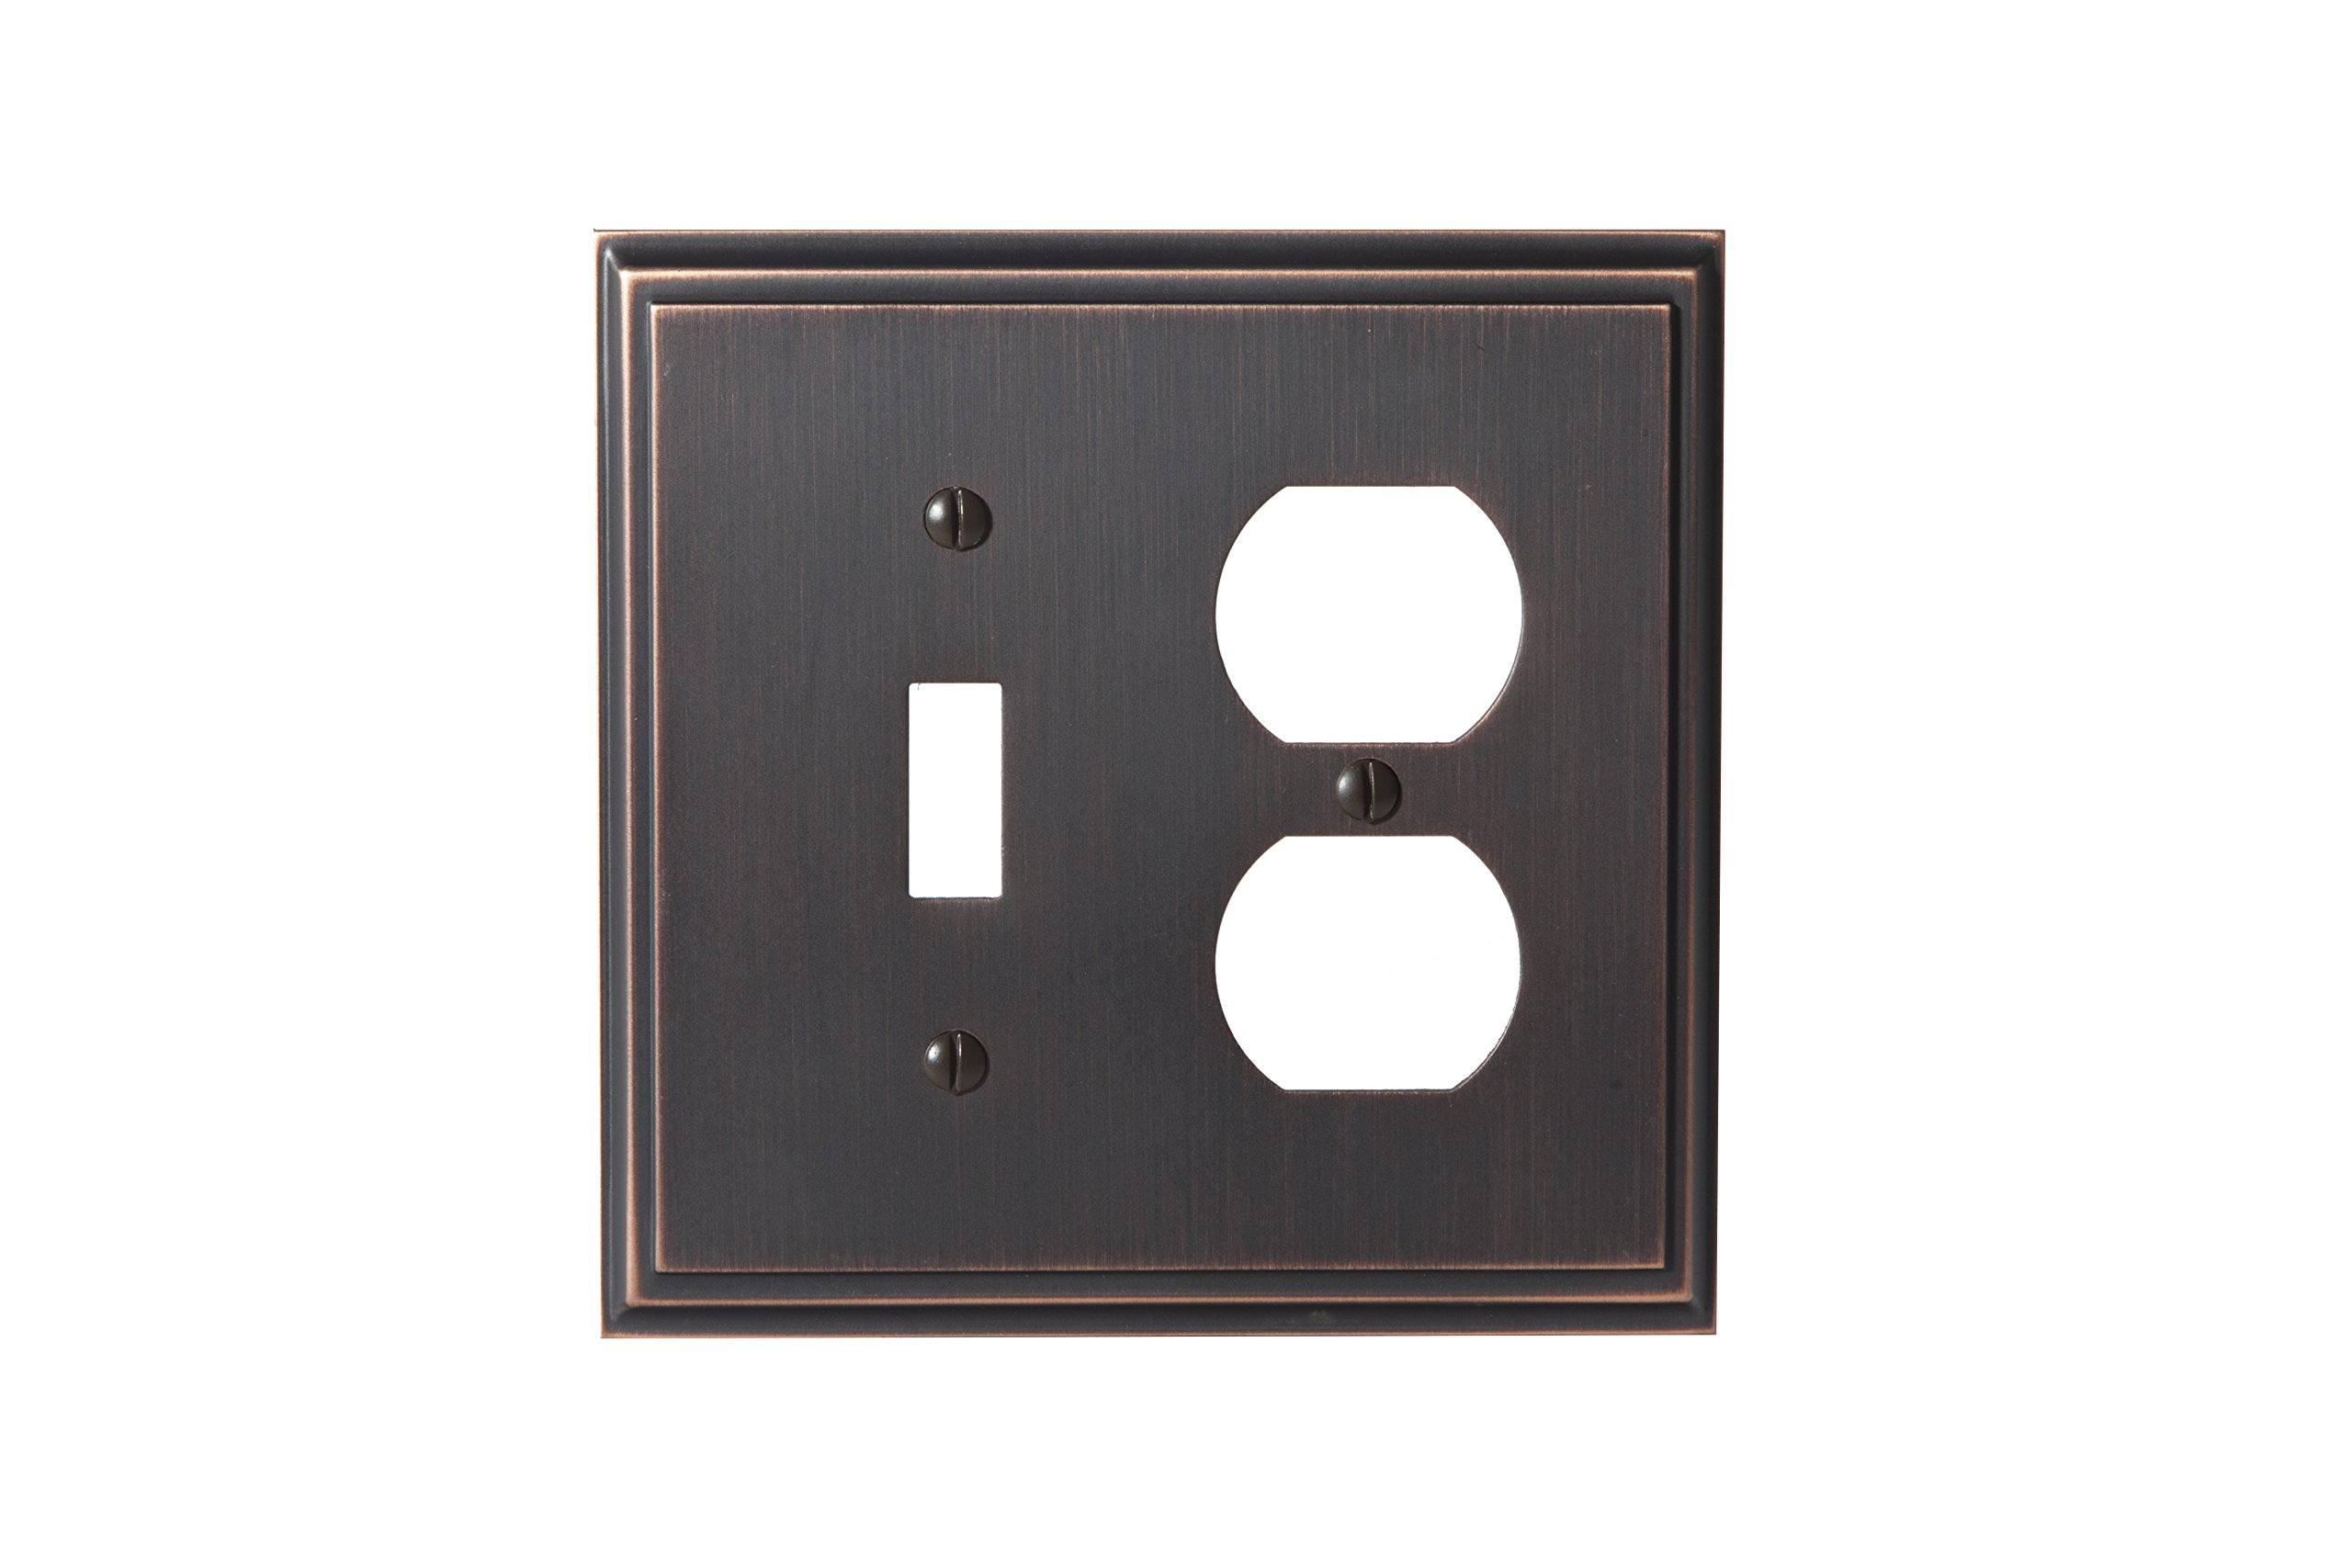 Amerock BP36524ORB Mulholland 1 Toggle, 1 Receptacle Wall Plate - Oil-Rubbed Bronze